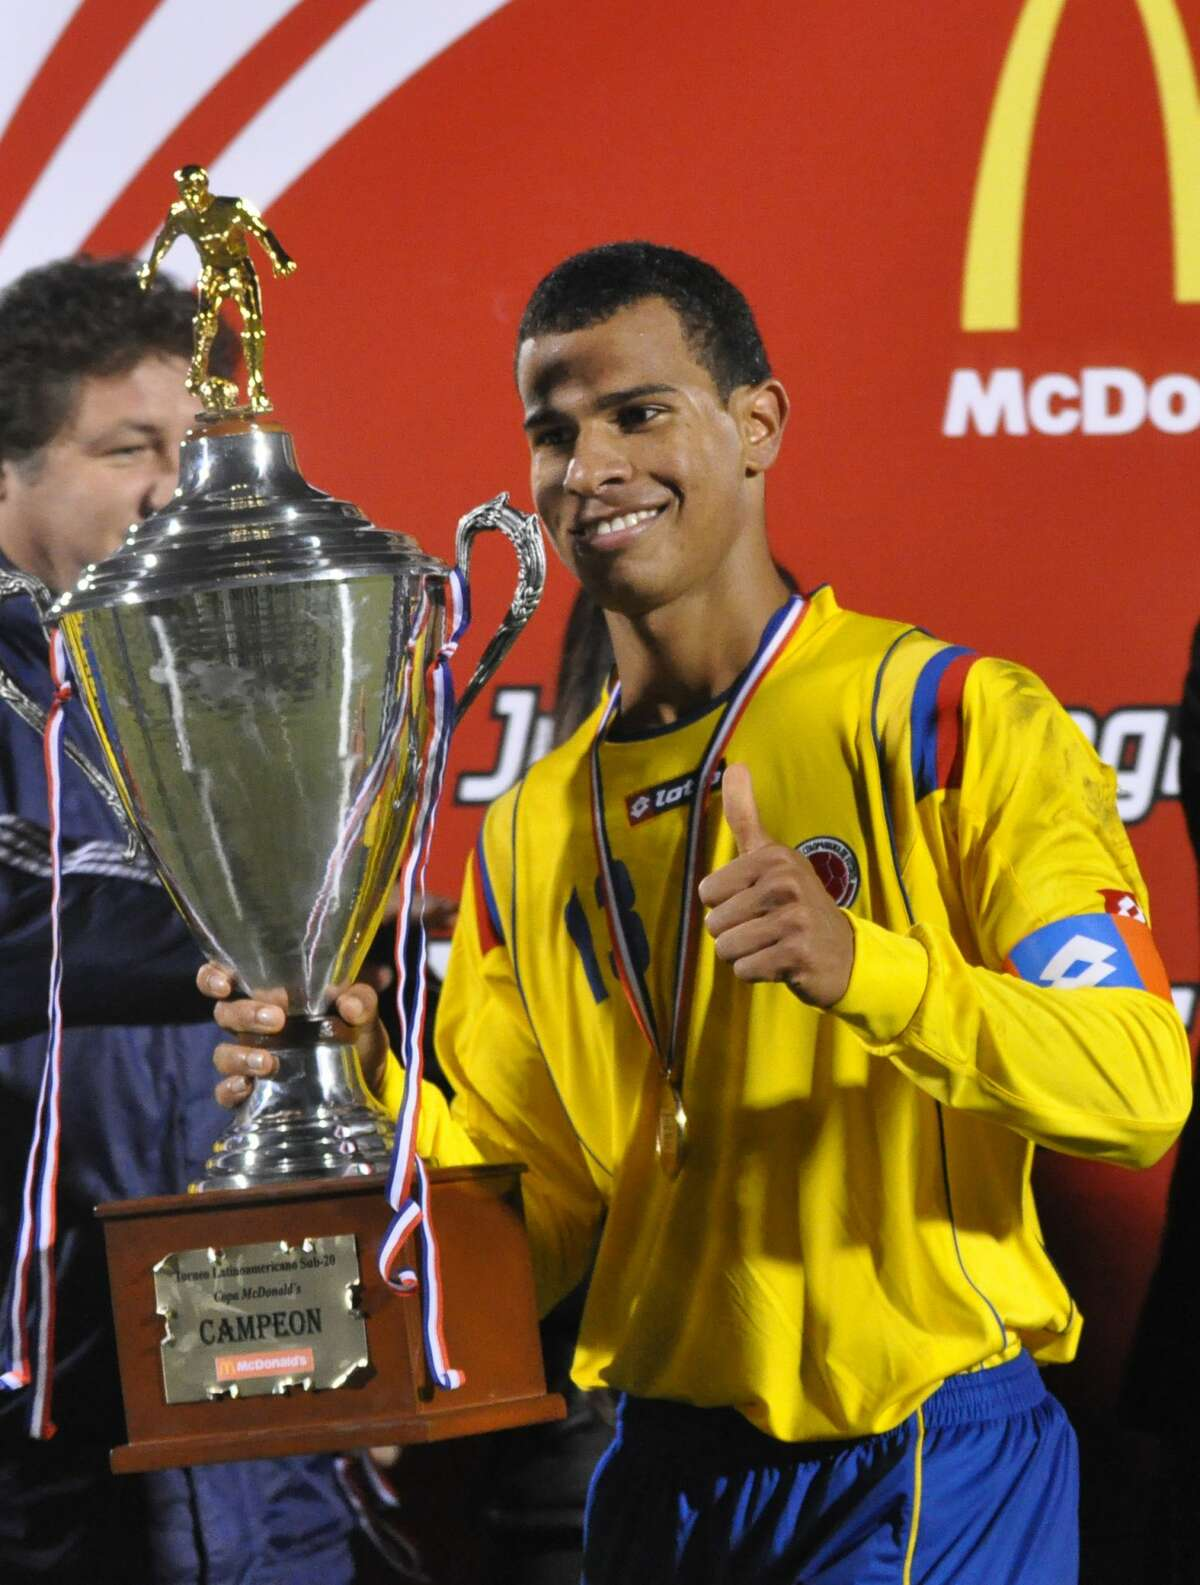 Colombia's Juan David Cabezas holds the trophy after the team beat Argentina in the Latin American Integration Under-20 tournament final soccer match in Asuncion July 31, 2010. AFP PHOTO / NORBERTO DUARTE (Photo credit should read NORBERTO DUARTE/AFP/Getty Images)